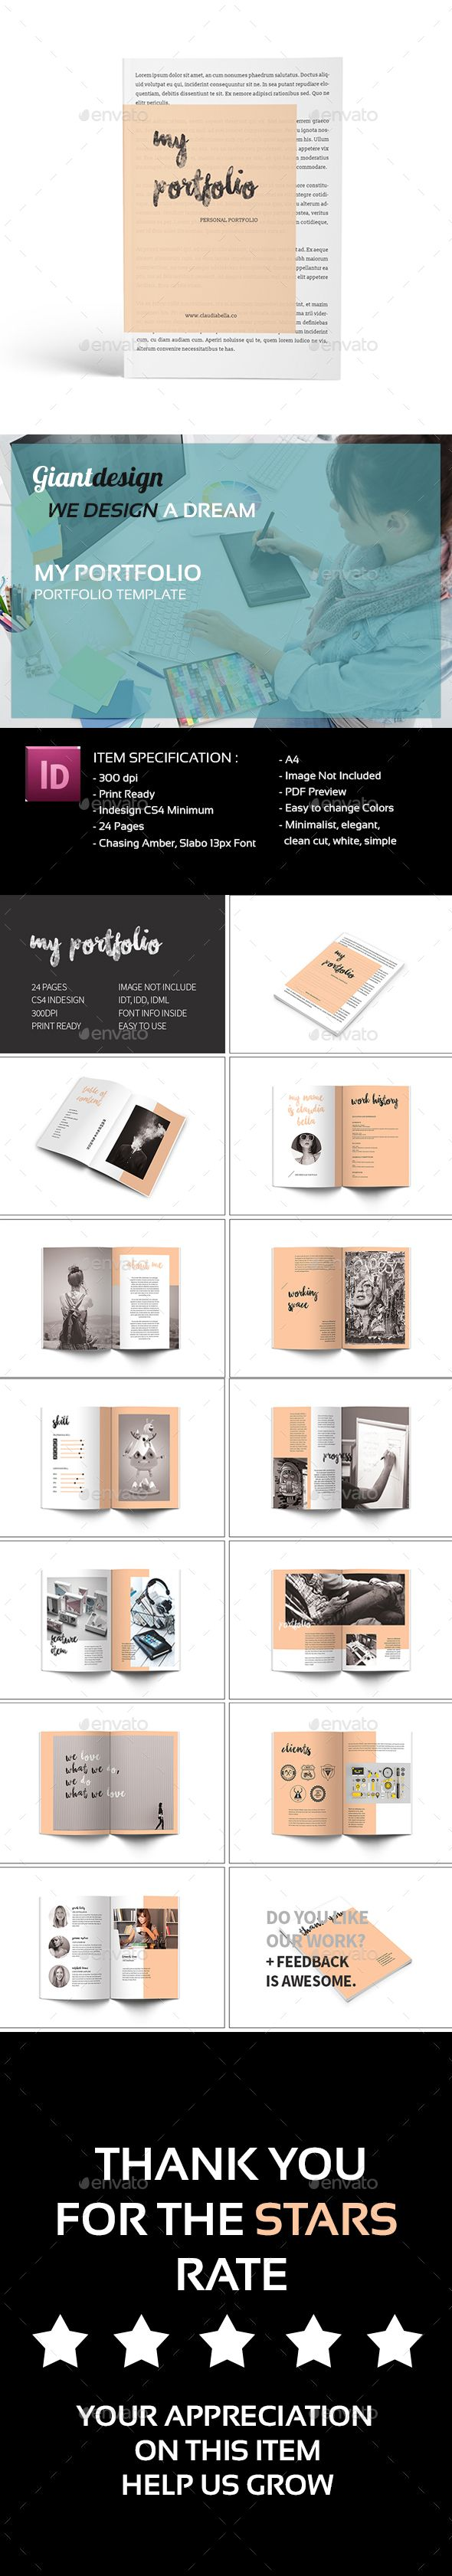 Website soft colors - Check Out A5 Interior Design Brochure Catalog By Giantdesign Shop On Creative Market Favorite Creative Market Products Pinterest Brochures